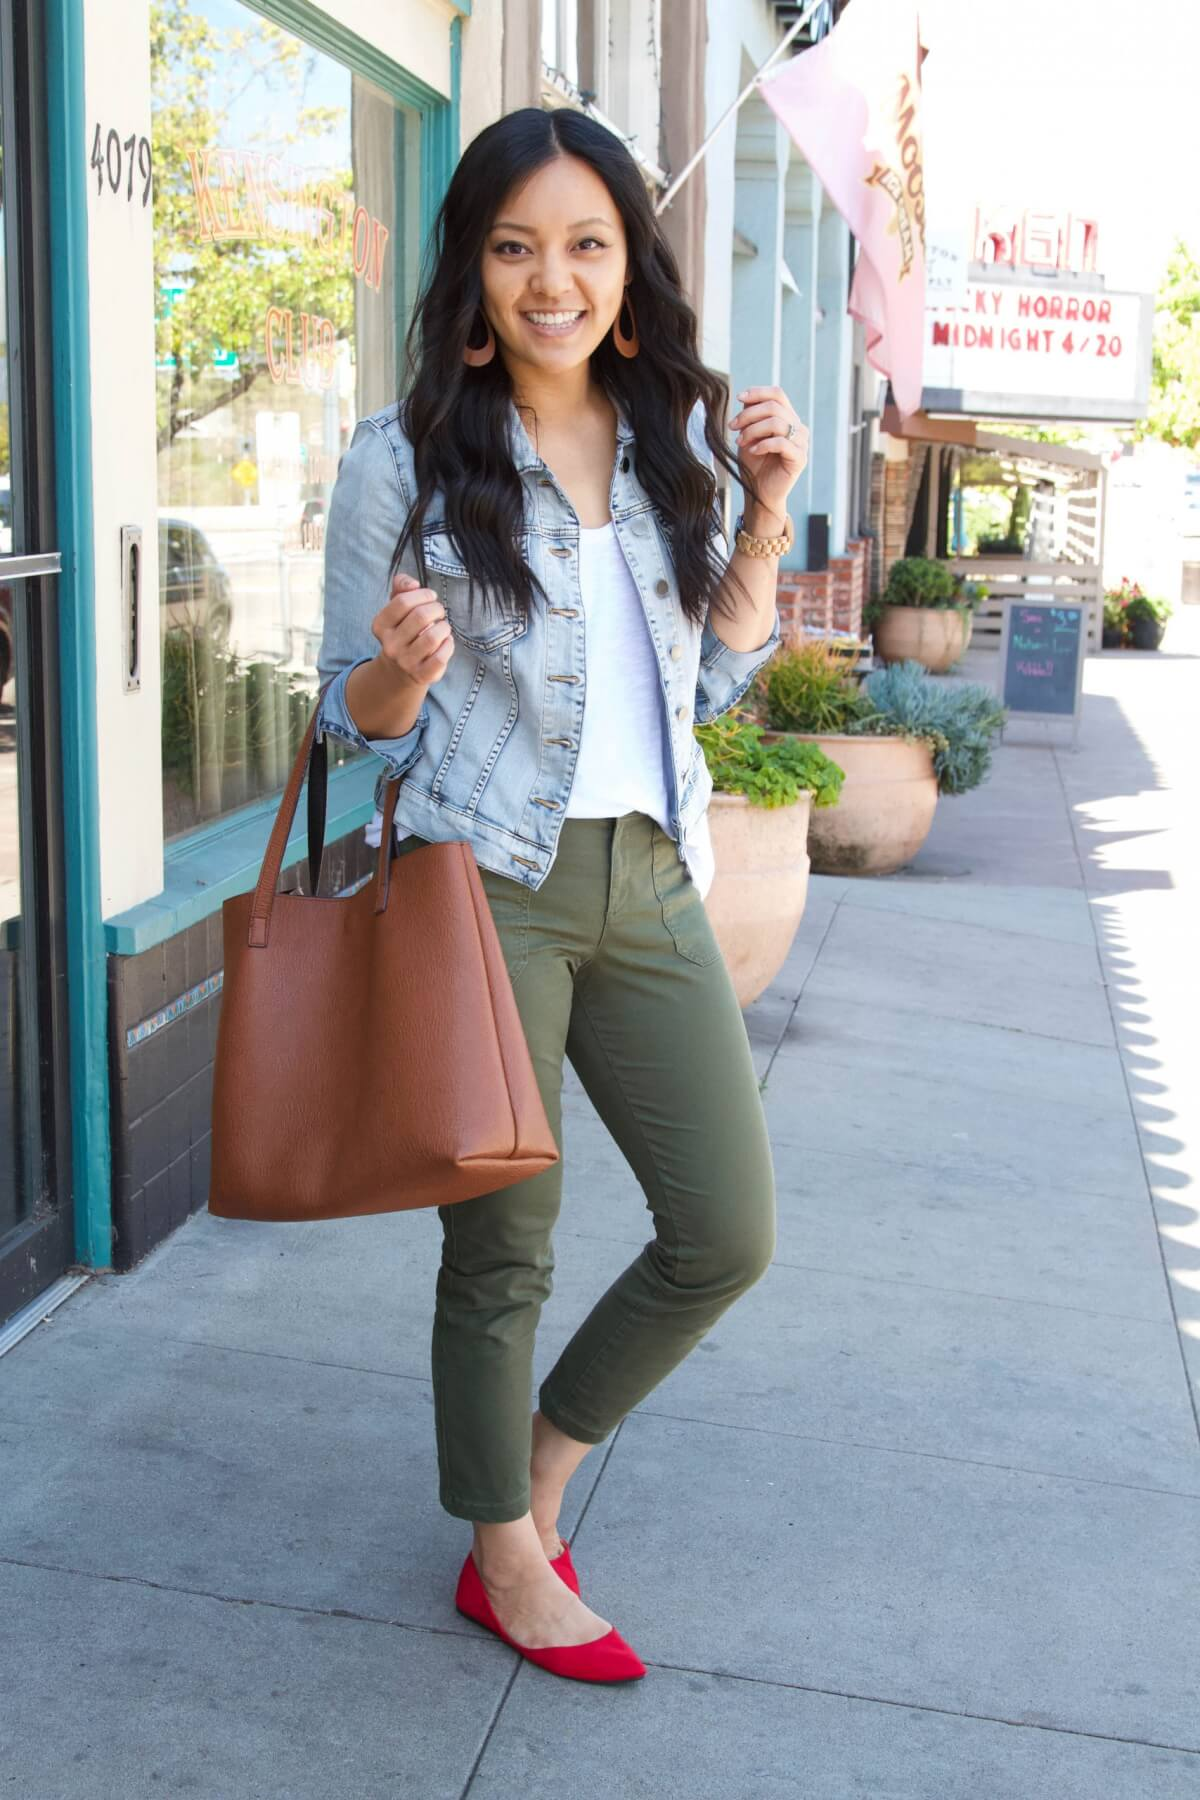 denim jacket outfit: denim jacket + white tee + olive pants + red flats + tan earrings + brown tote